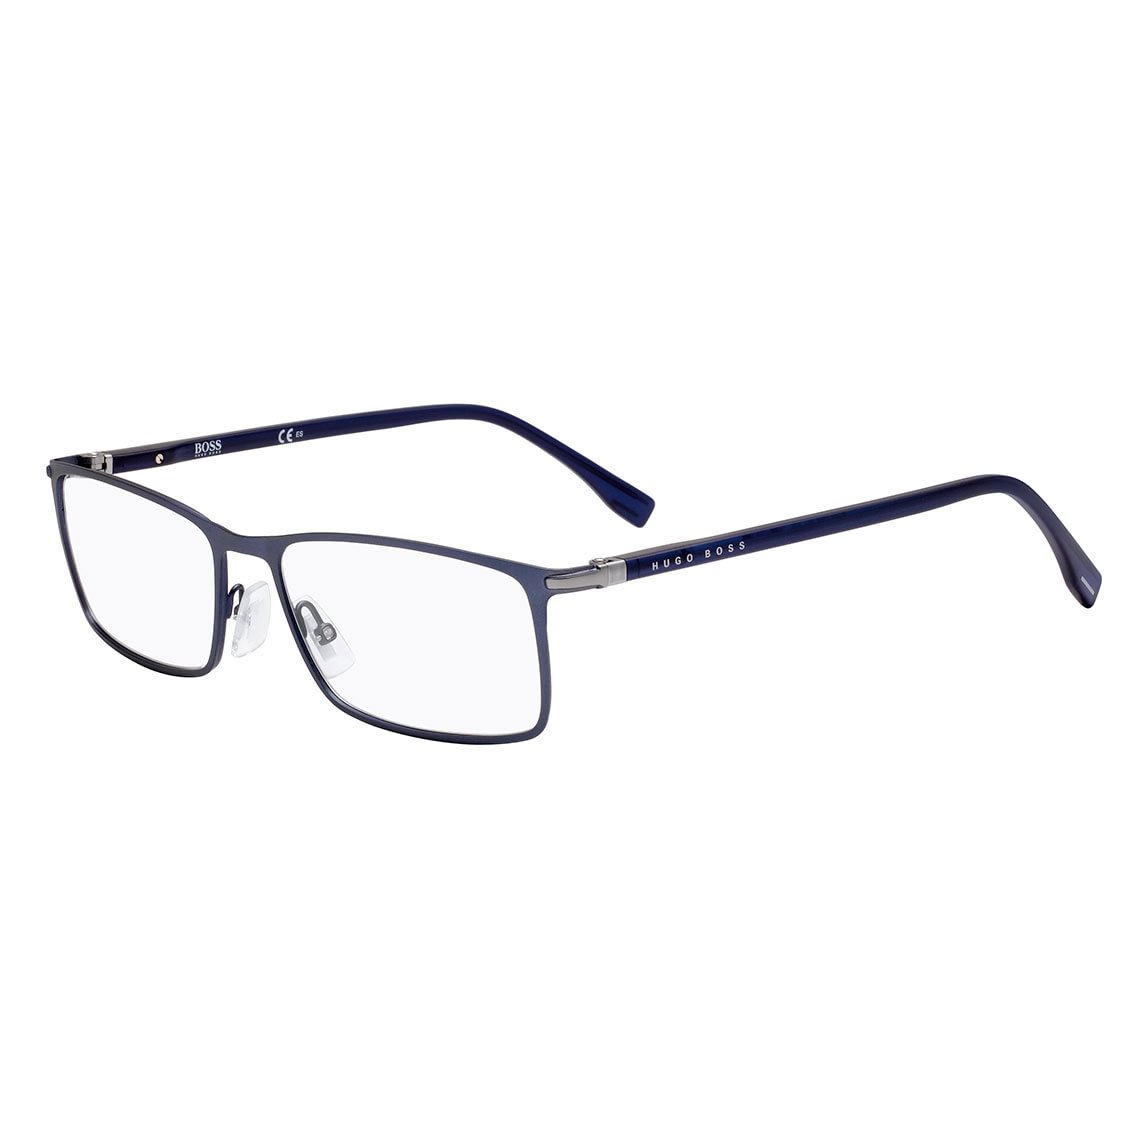 Hugo Boss BOSS 1006 FLL 5717